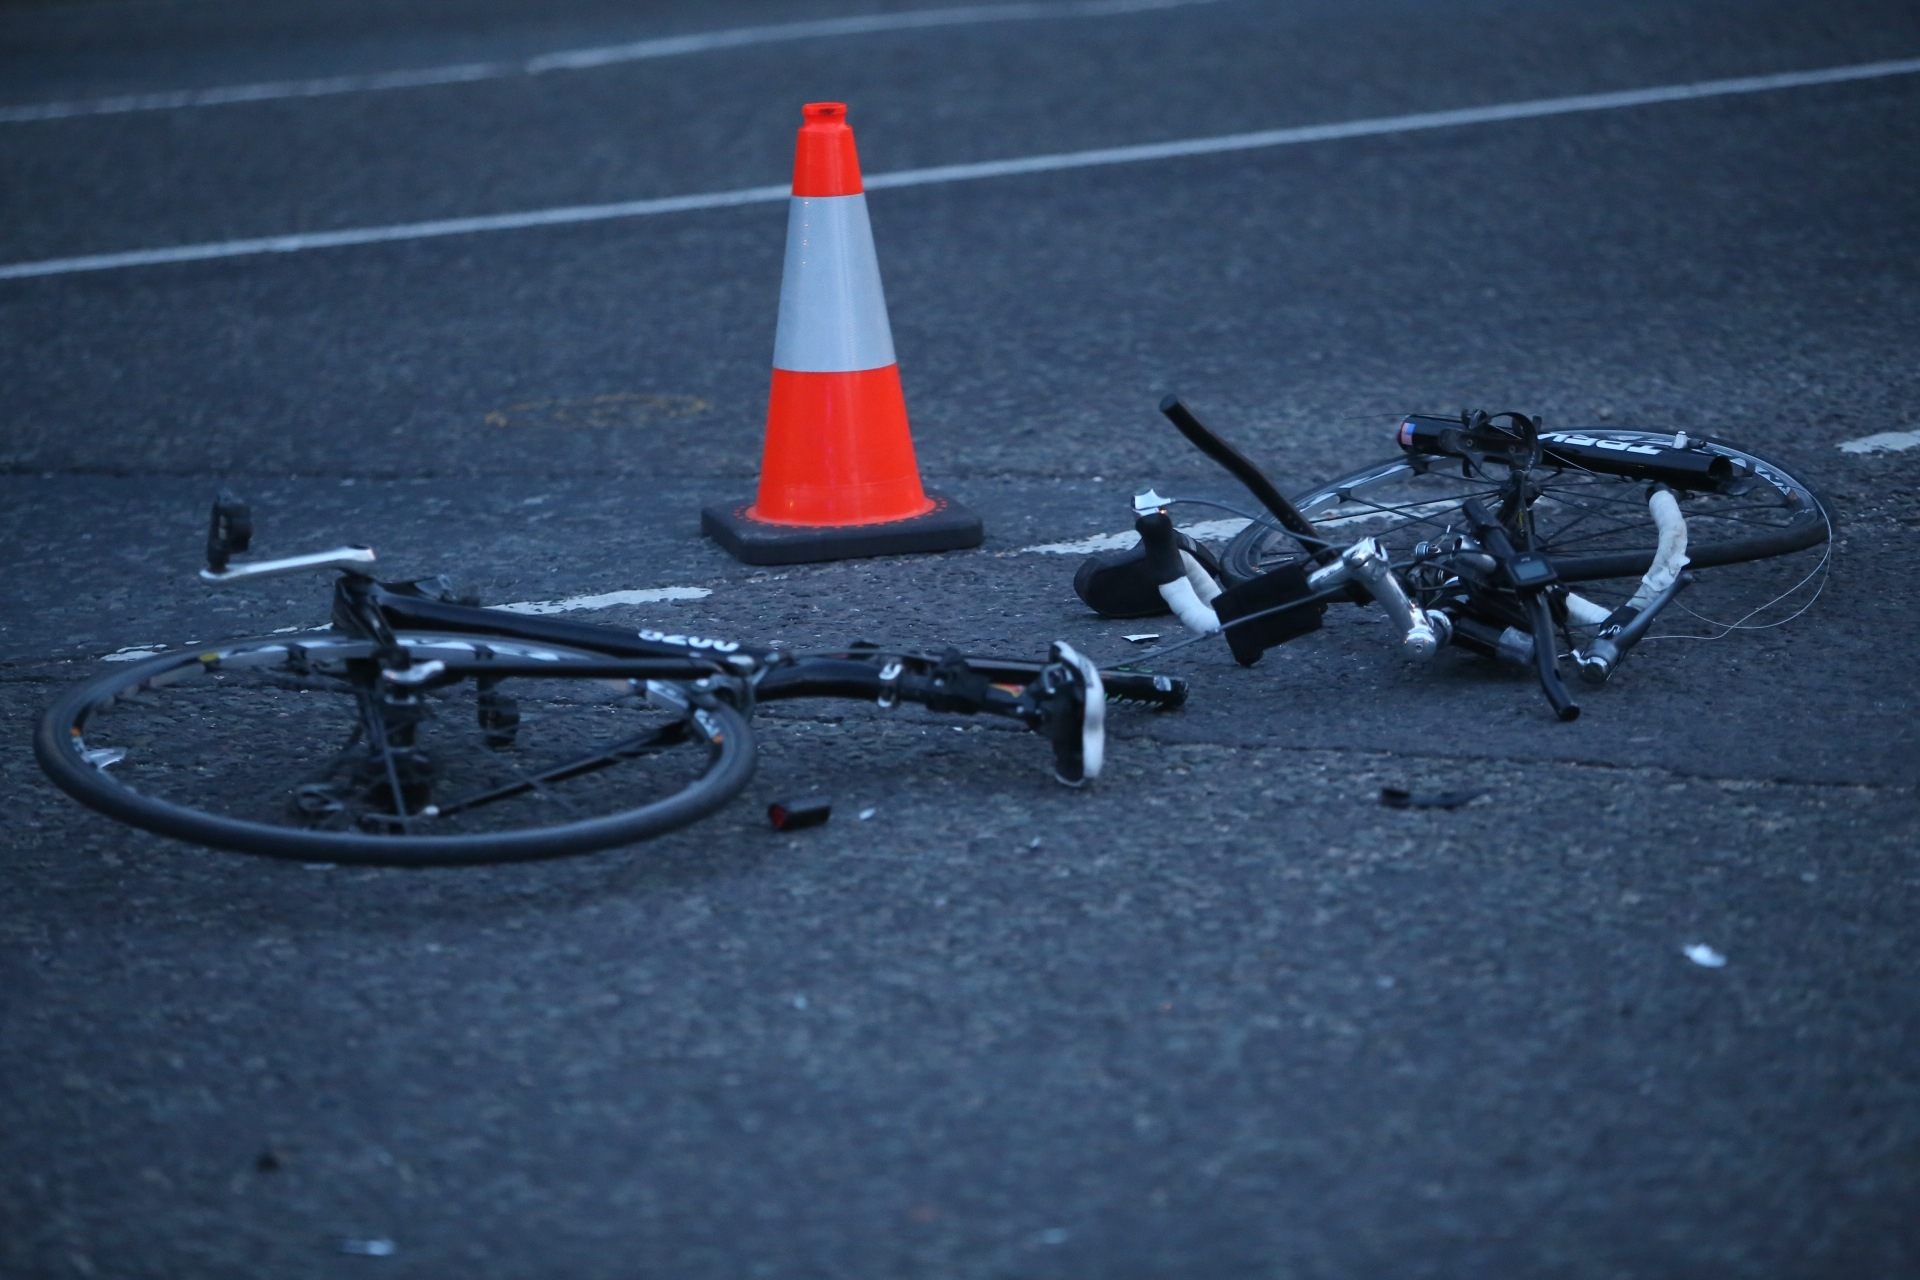 Road closes after cyclist 'seriously' injured in collision with car